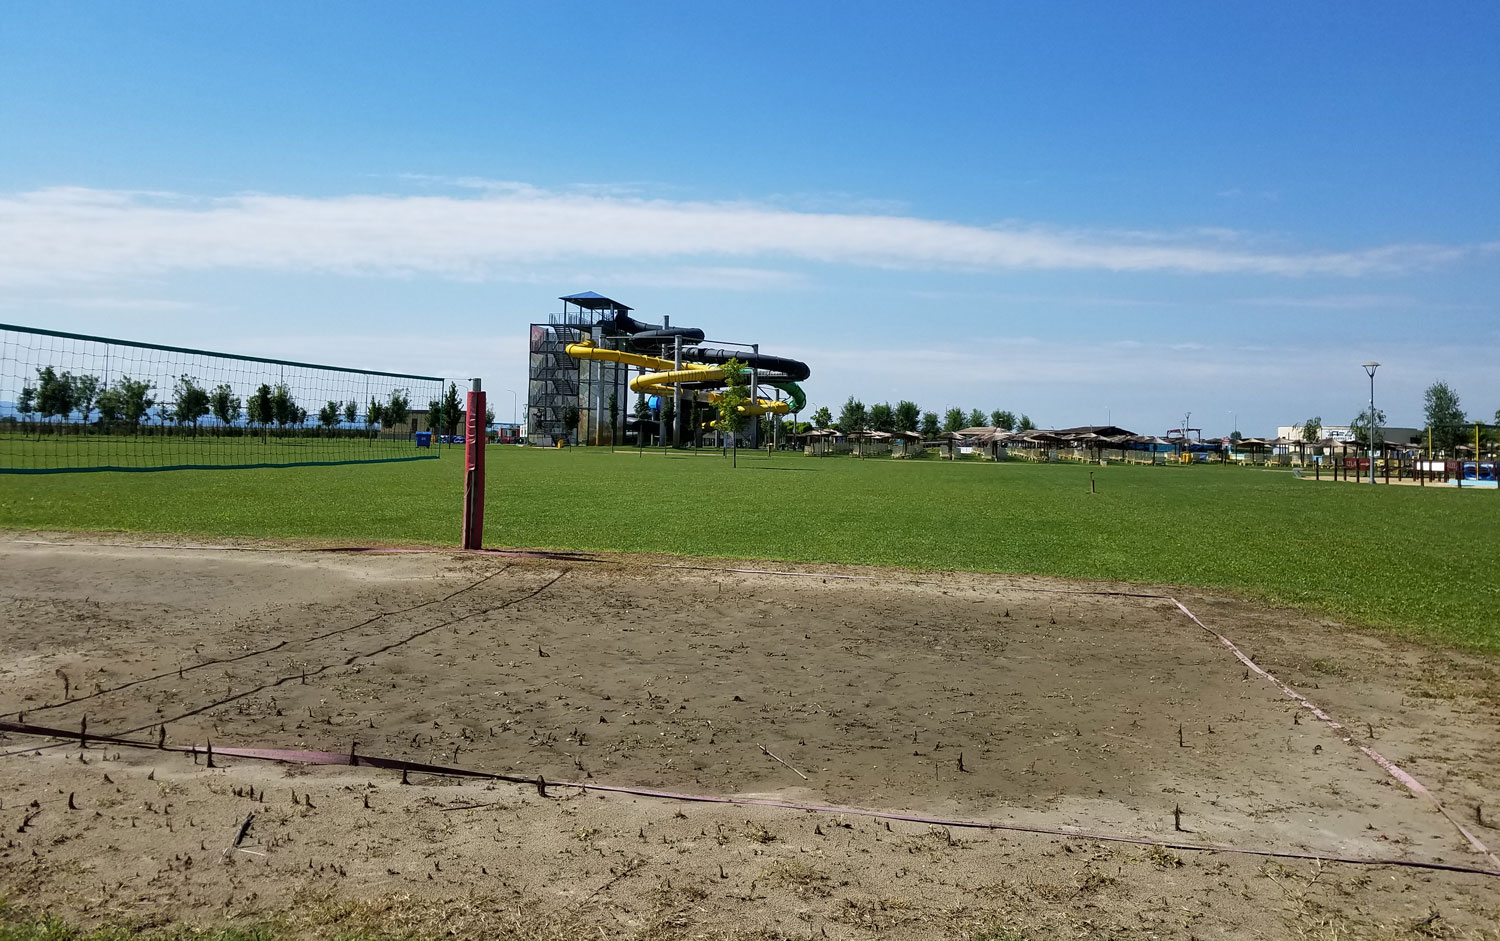 Football field on the sand